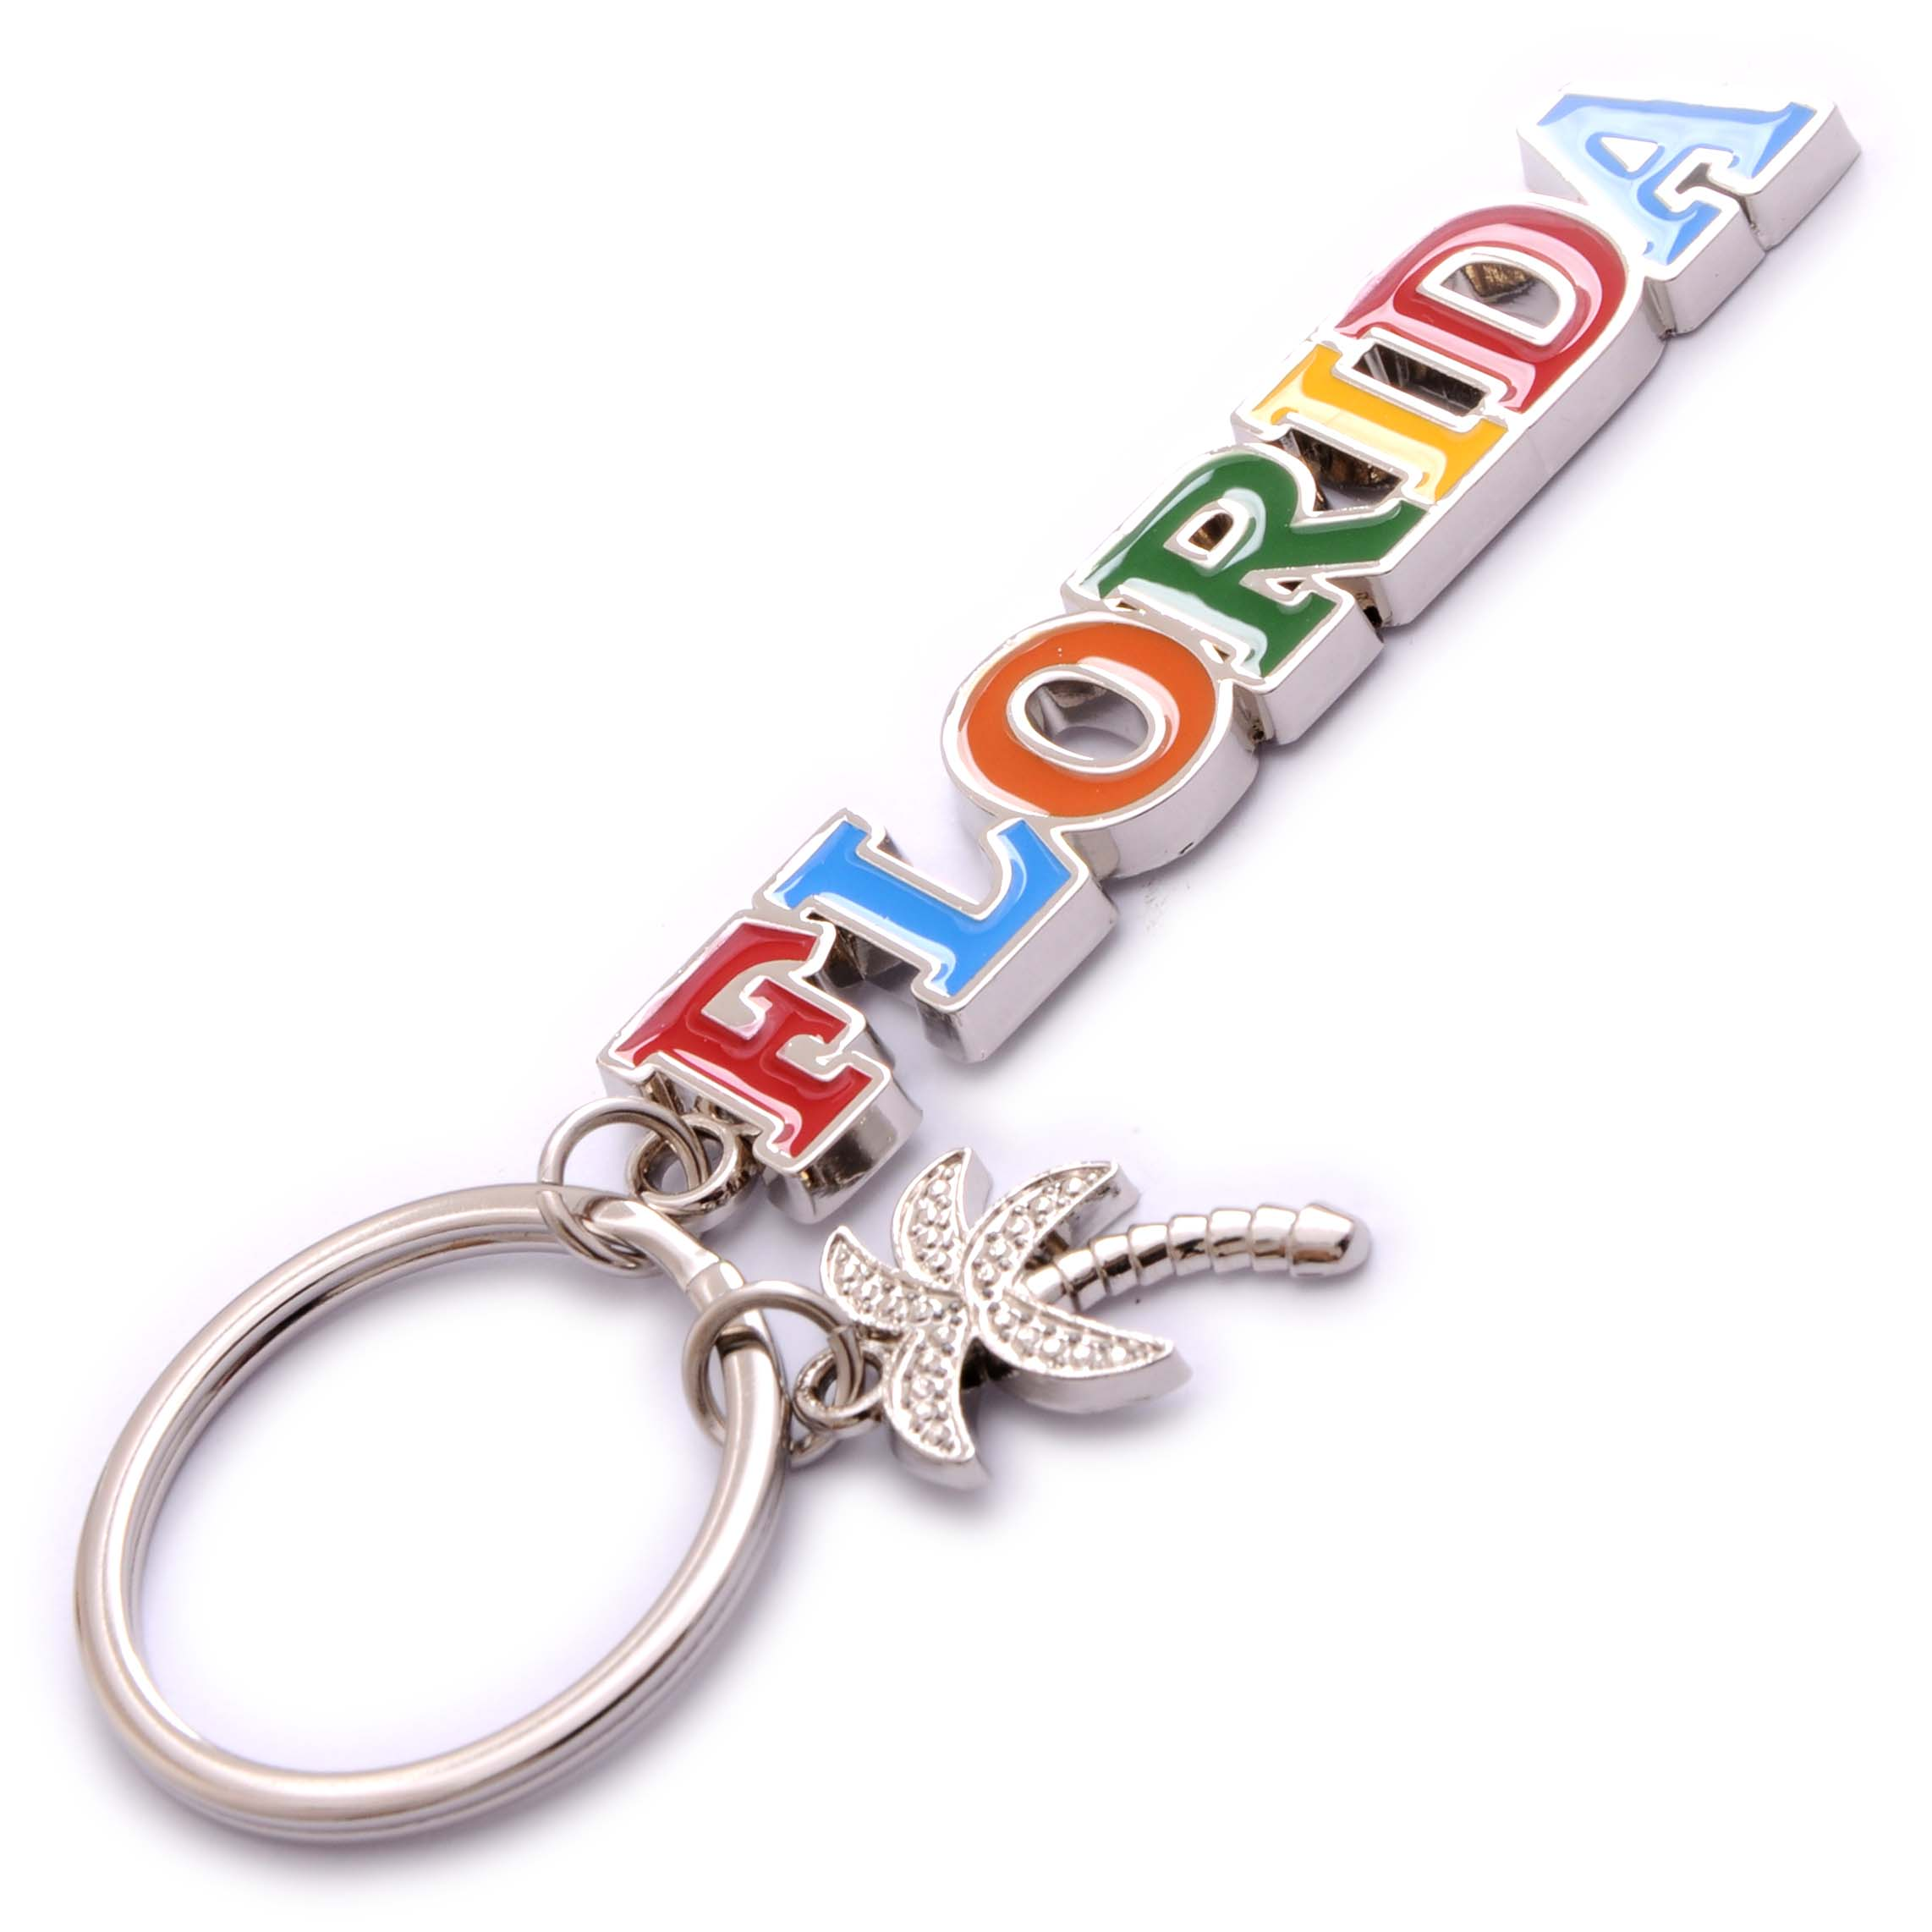 KEY CHAIN METAL-FLA LTR/PT ICON * UOM: PC * Minimum Order:24